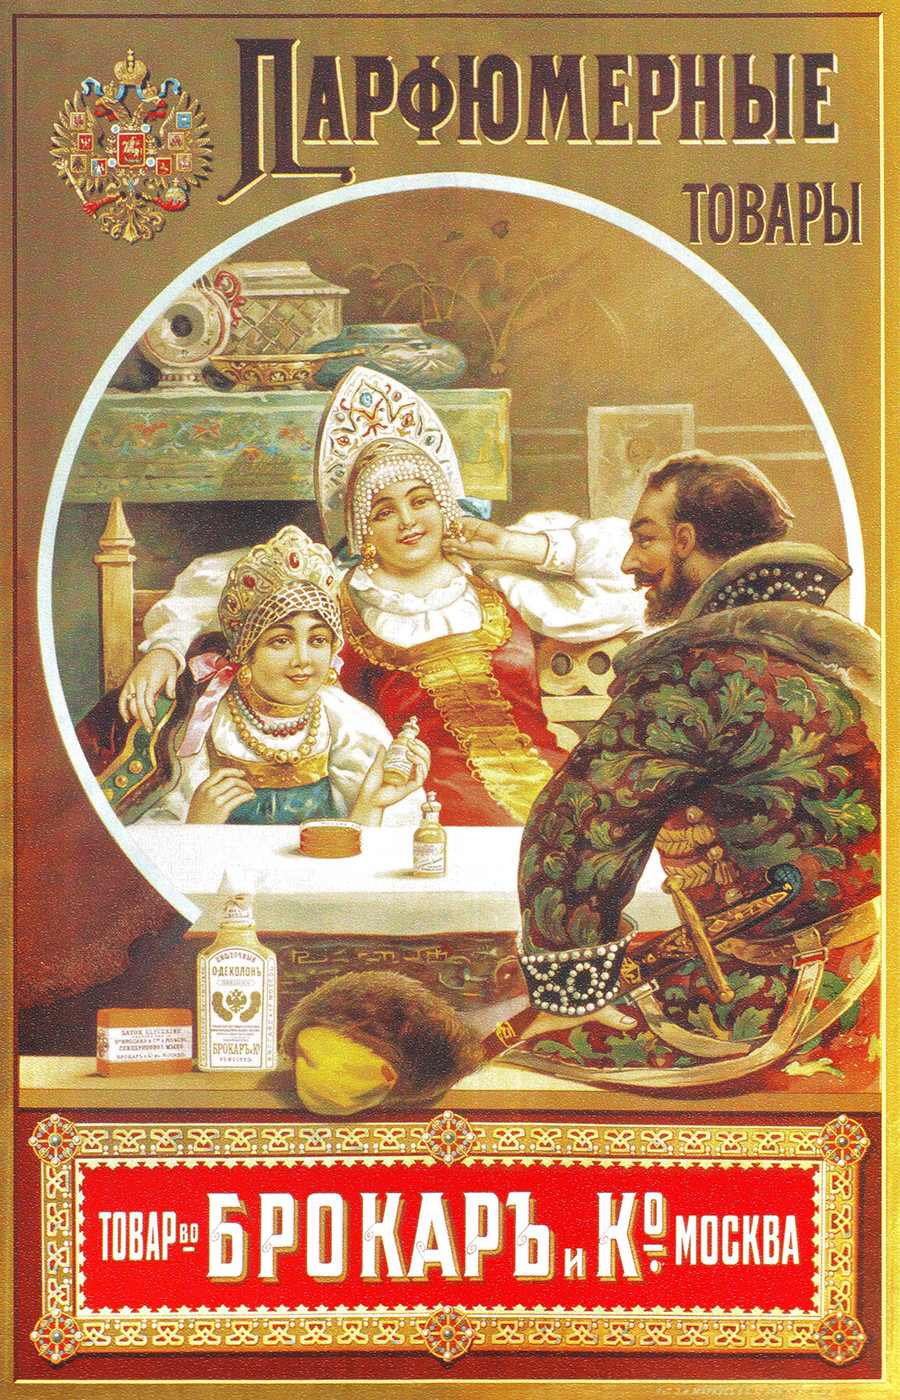 Brocard's Russia-themed advertising poster